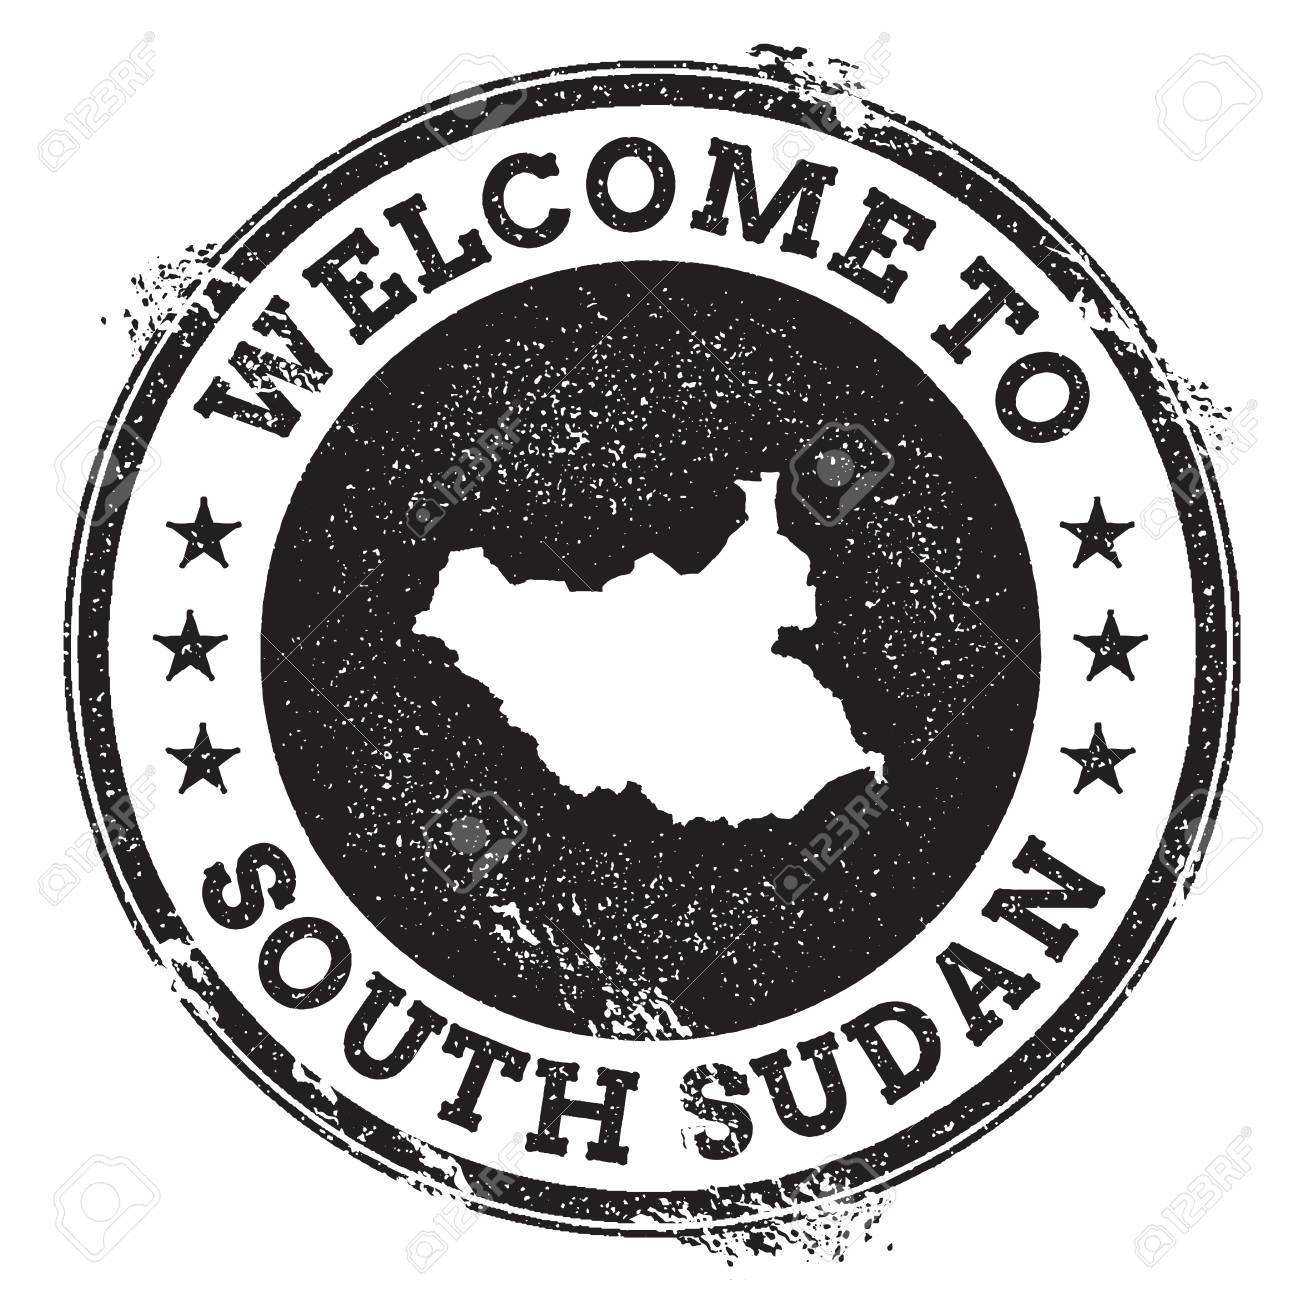 Vintage passport welcome stamp with South Sudan map  Grunge rubber